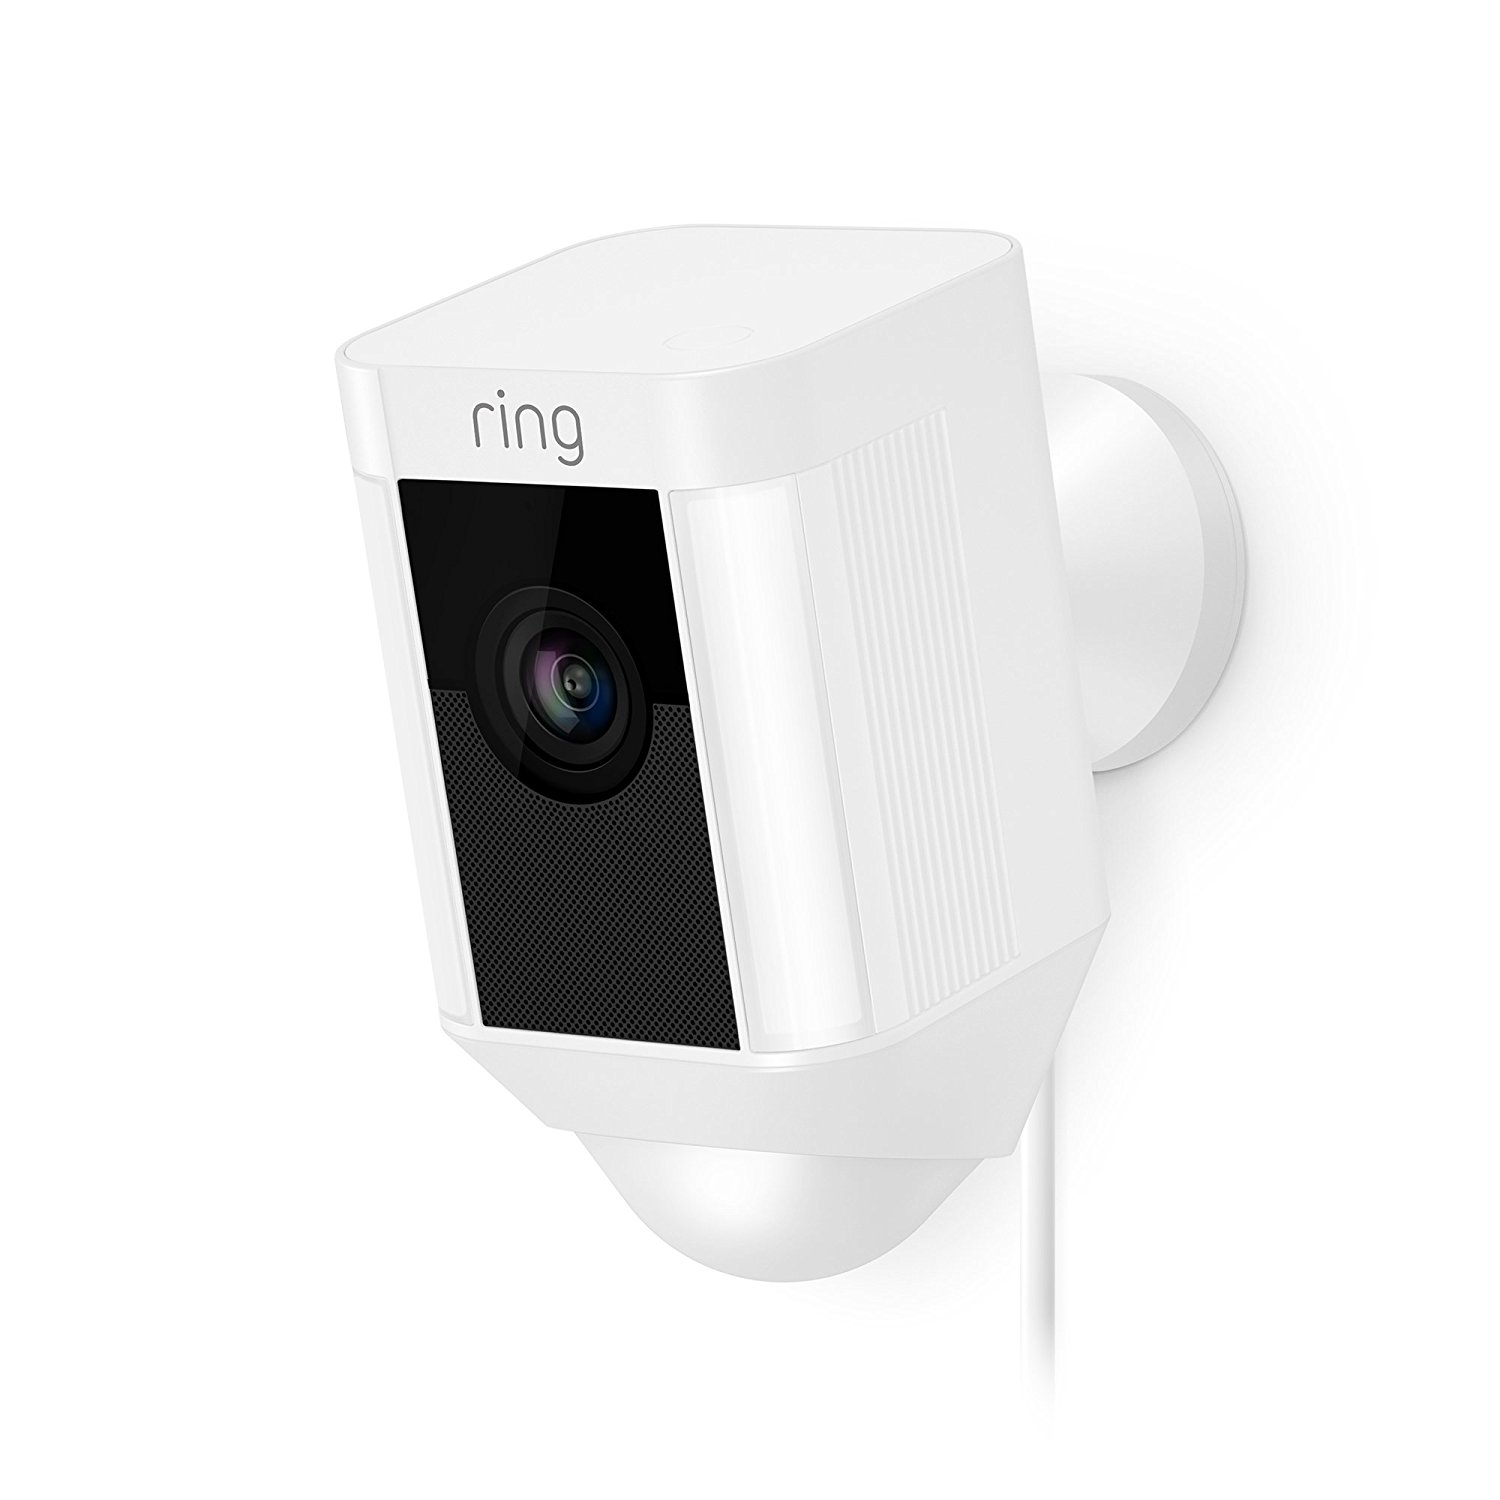 10 Things Security Camera System Must Have To Be Considered The Best